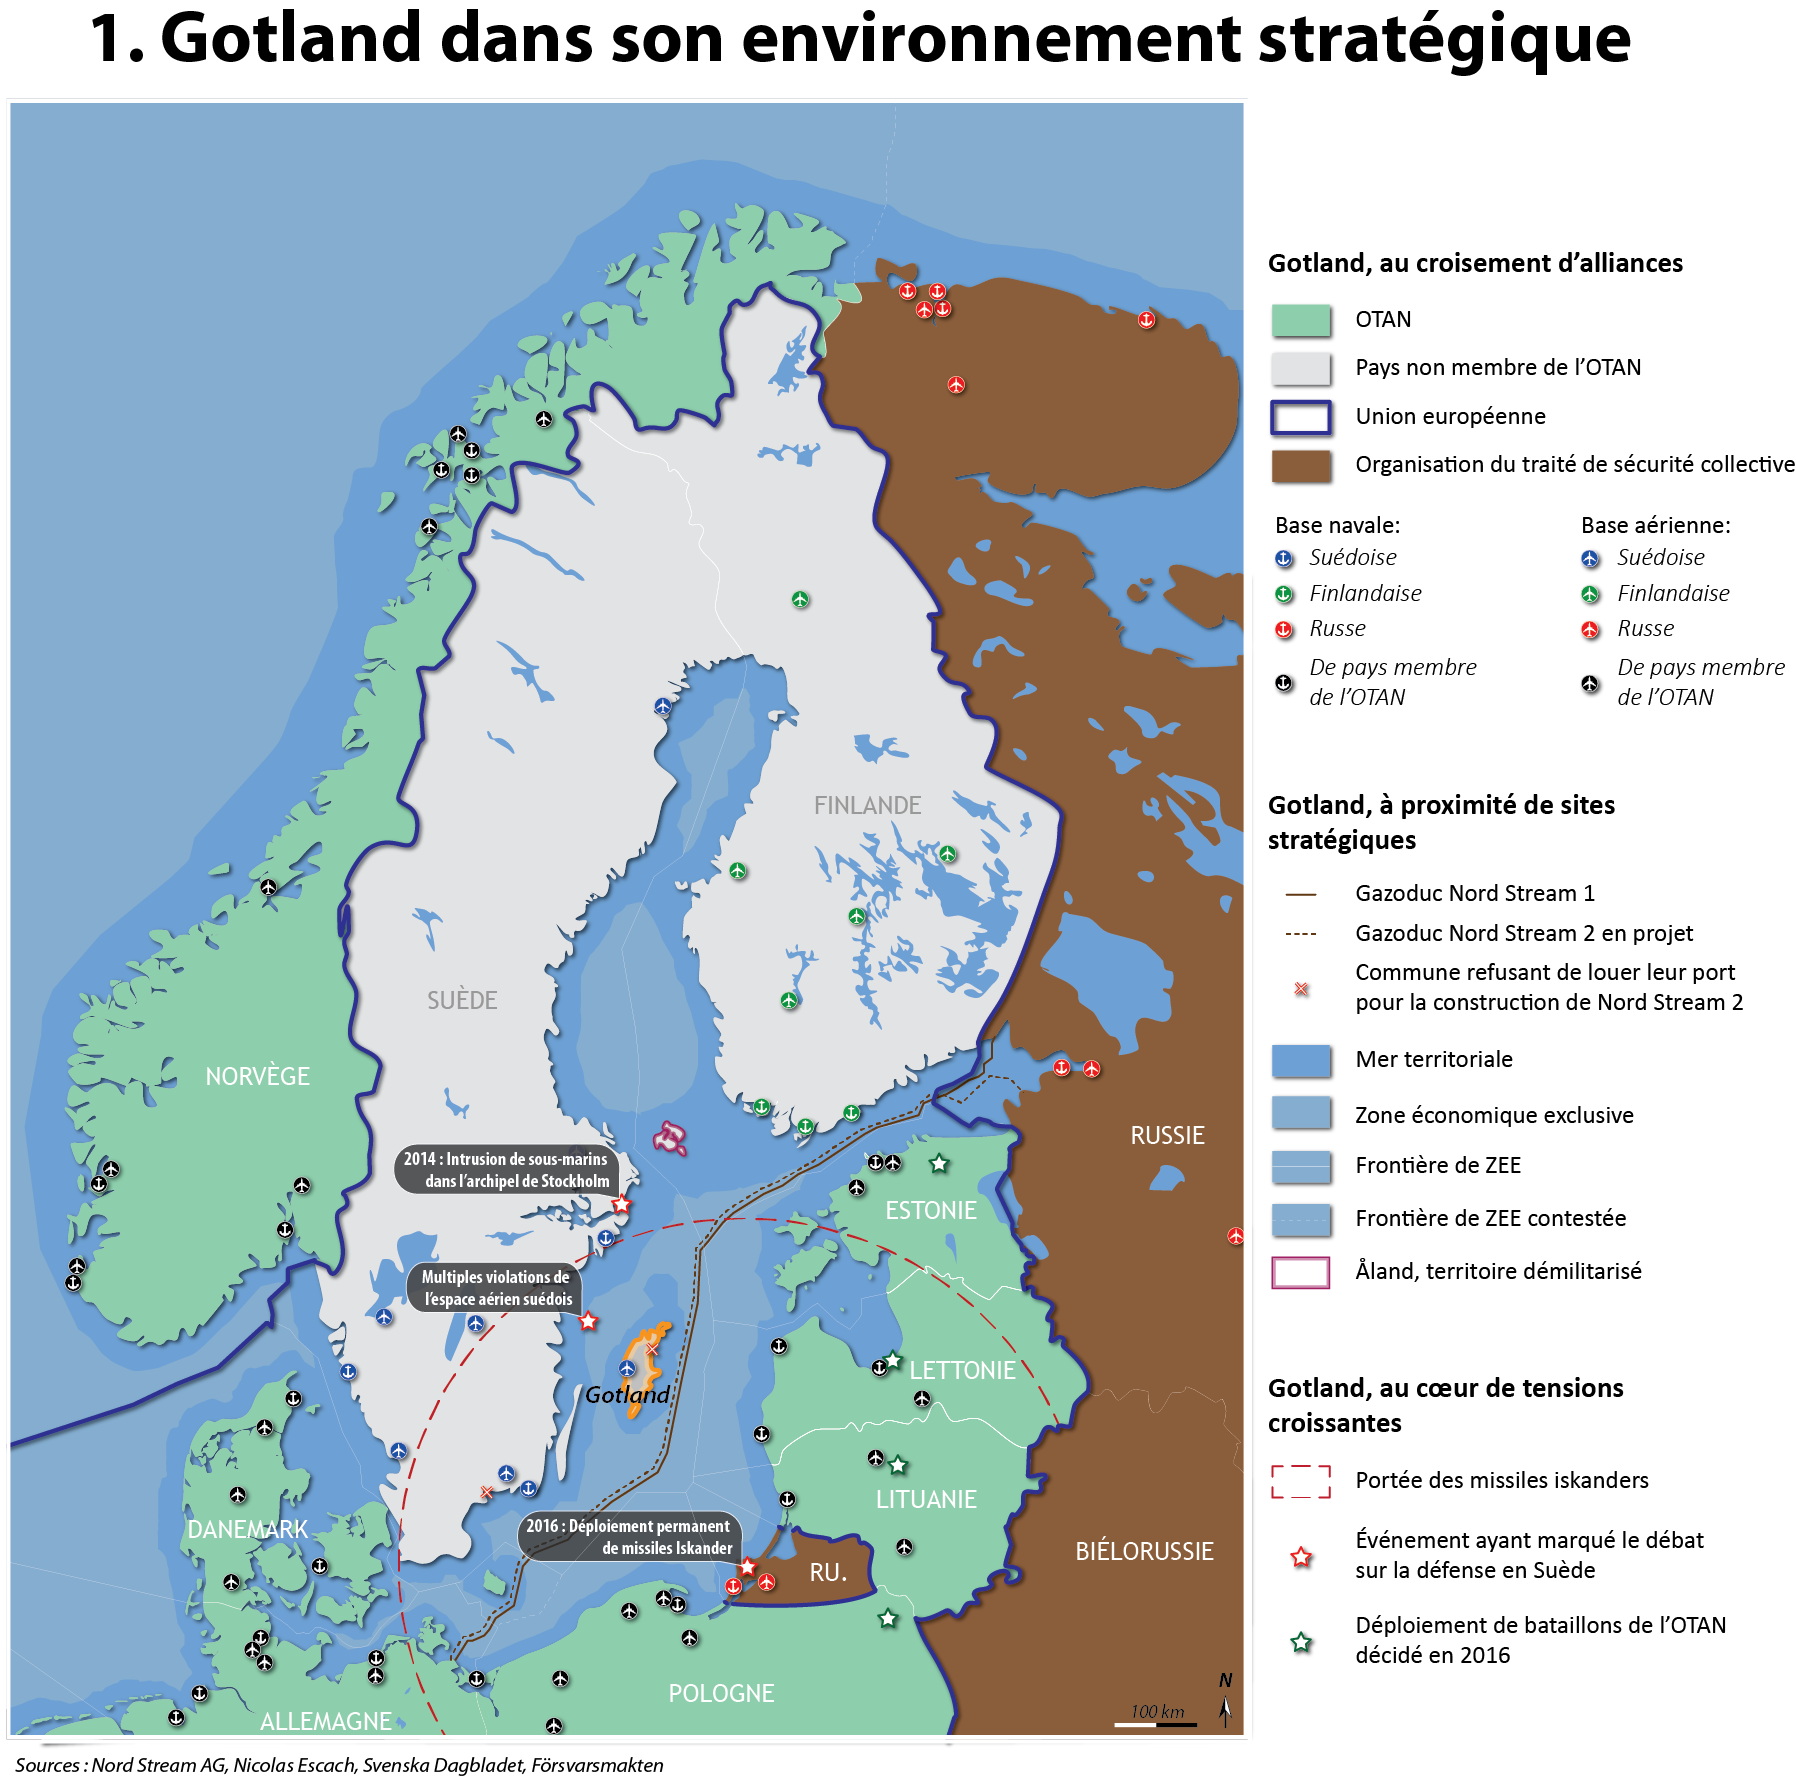 carte-gotland-strategique